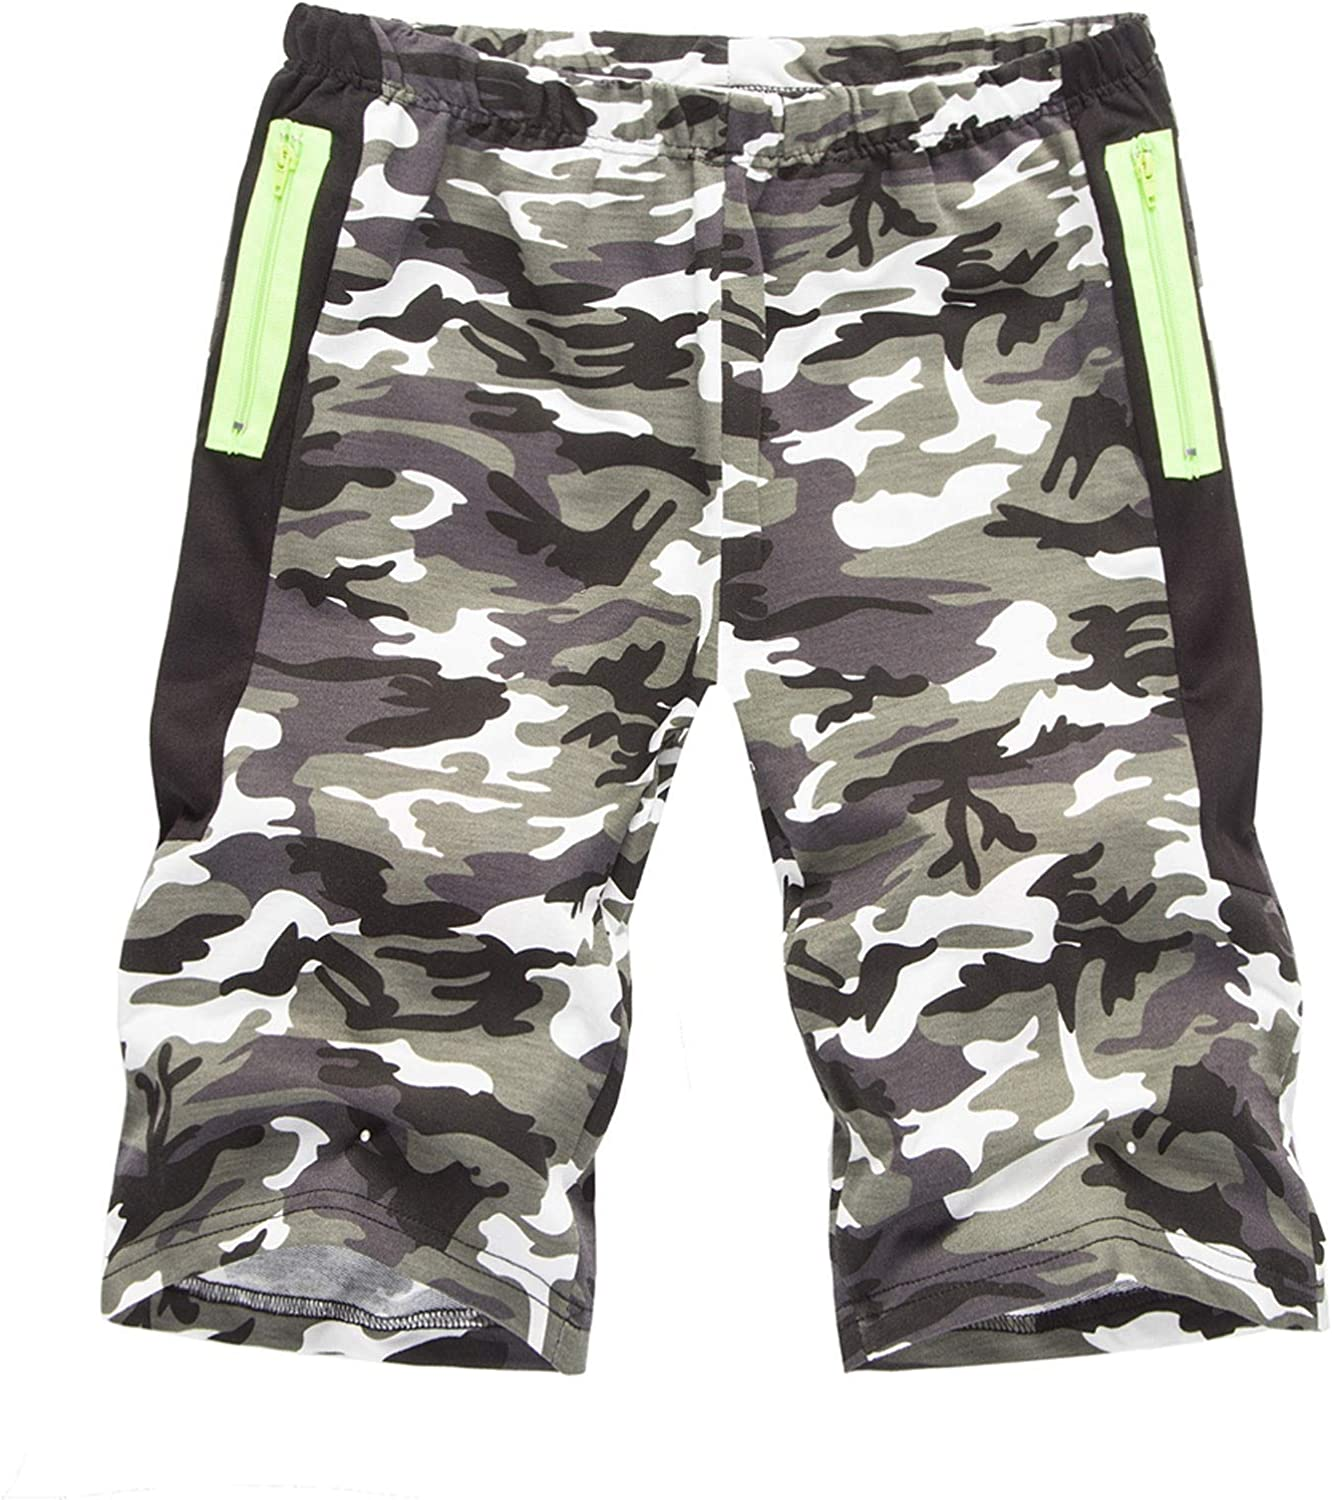 Muyise Camouflage Printed Sports Short Pants for Men Summer Casual Shorts Bodybuilding Running Jogging Short Pants